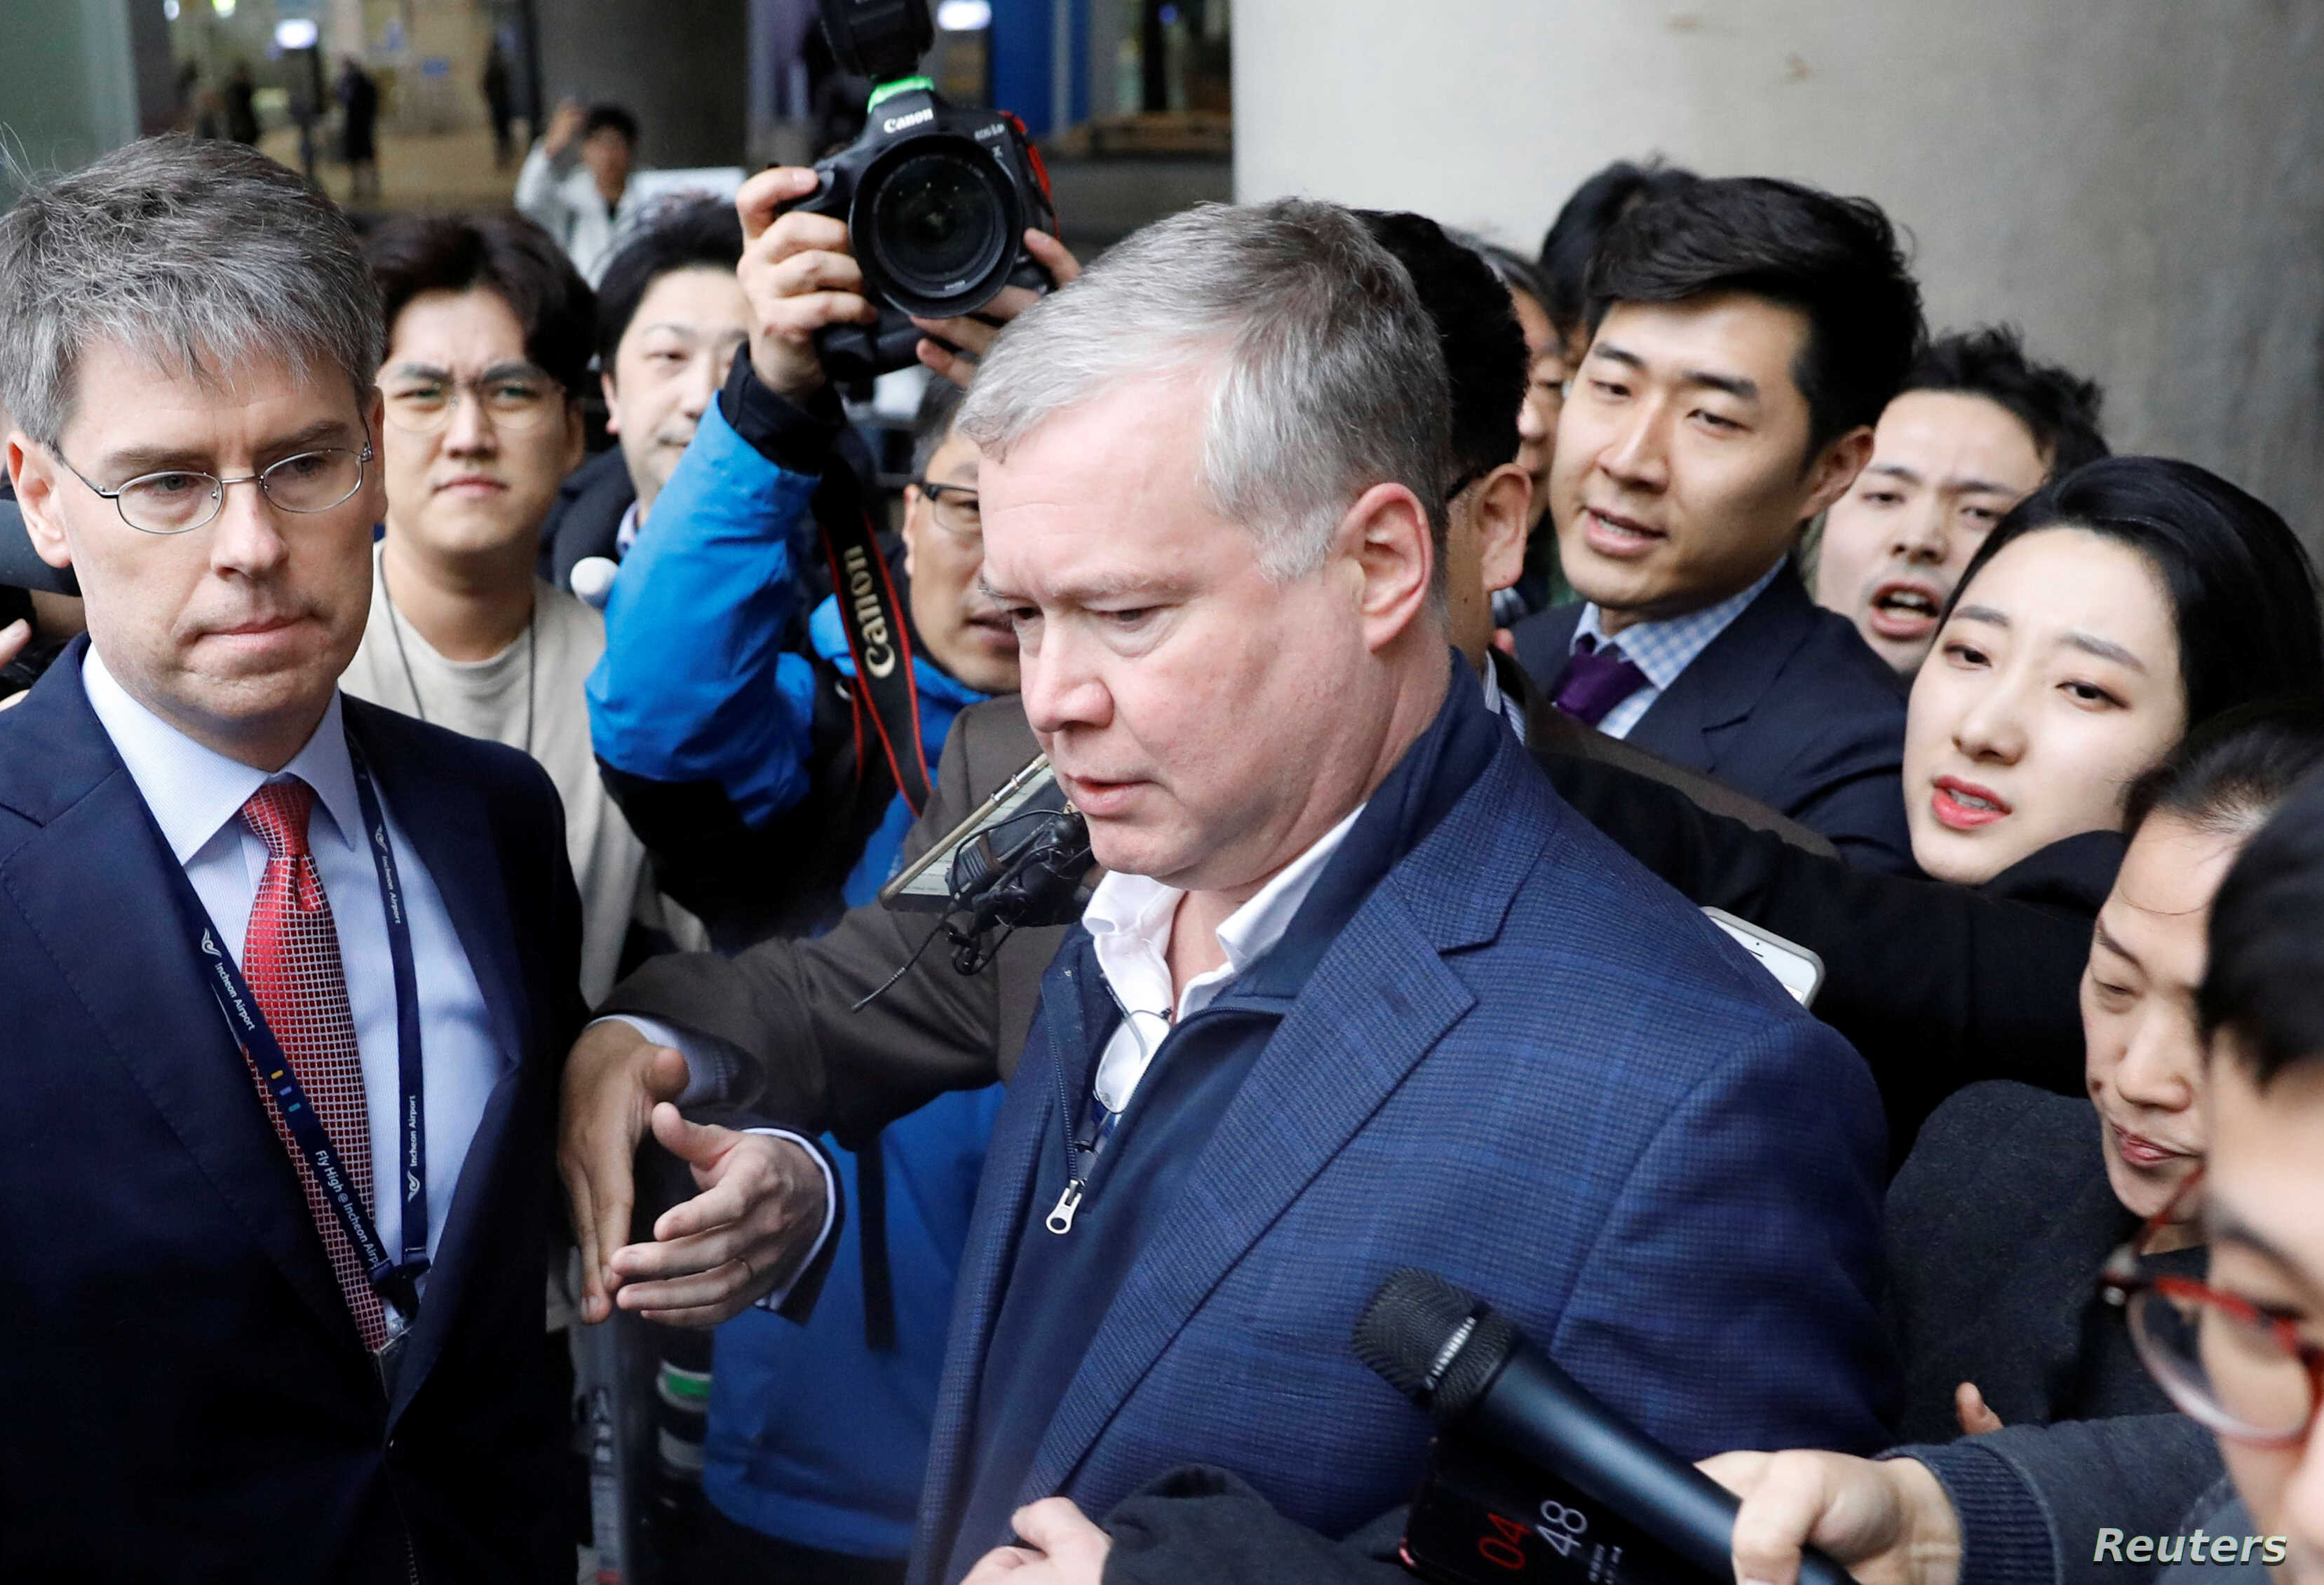 U.S. Special Representative for North Korea Stephen Biegun is surrounded by media upon his arrival to Incheon International Airport in Incheon, South Korea, Feb. 3, 2019.